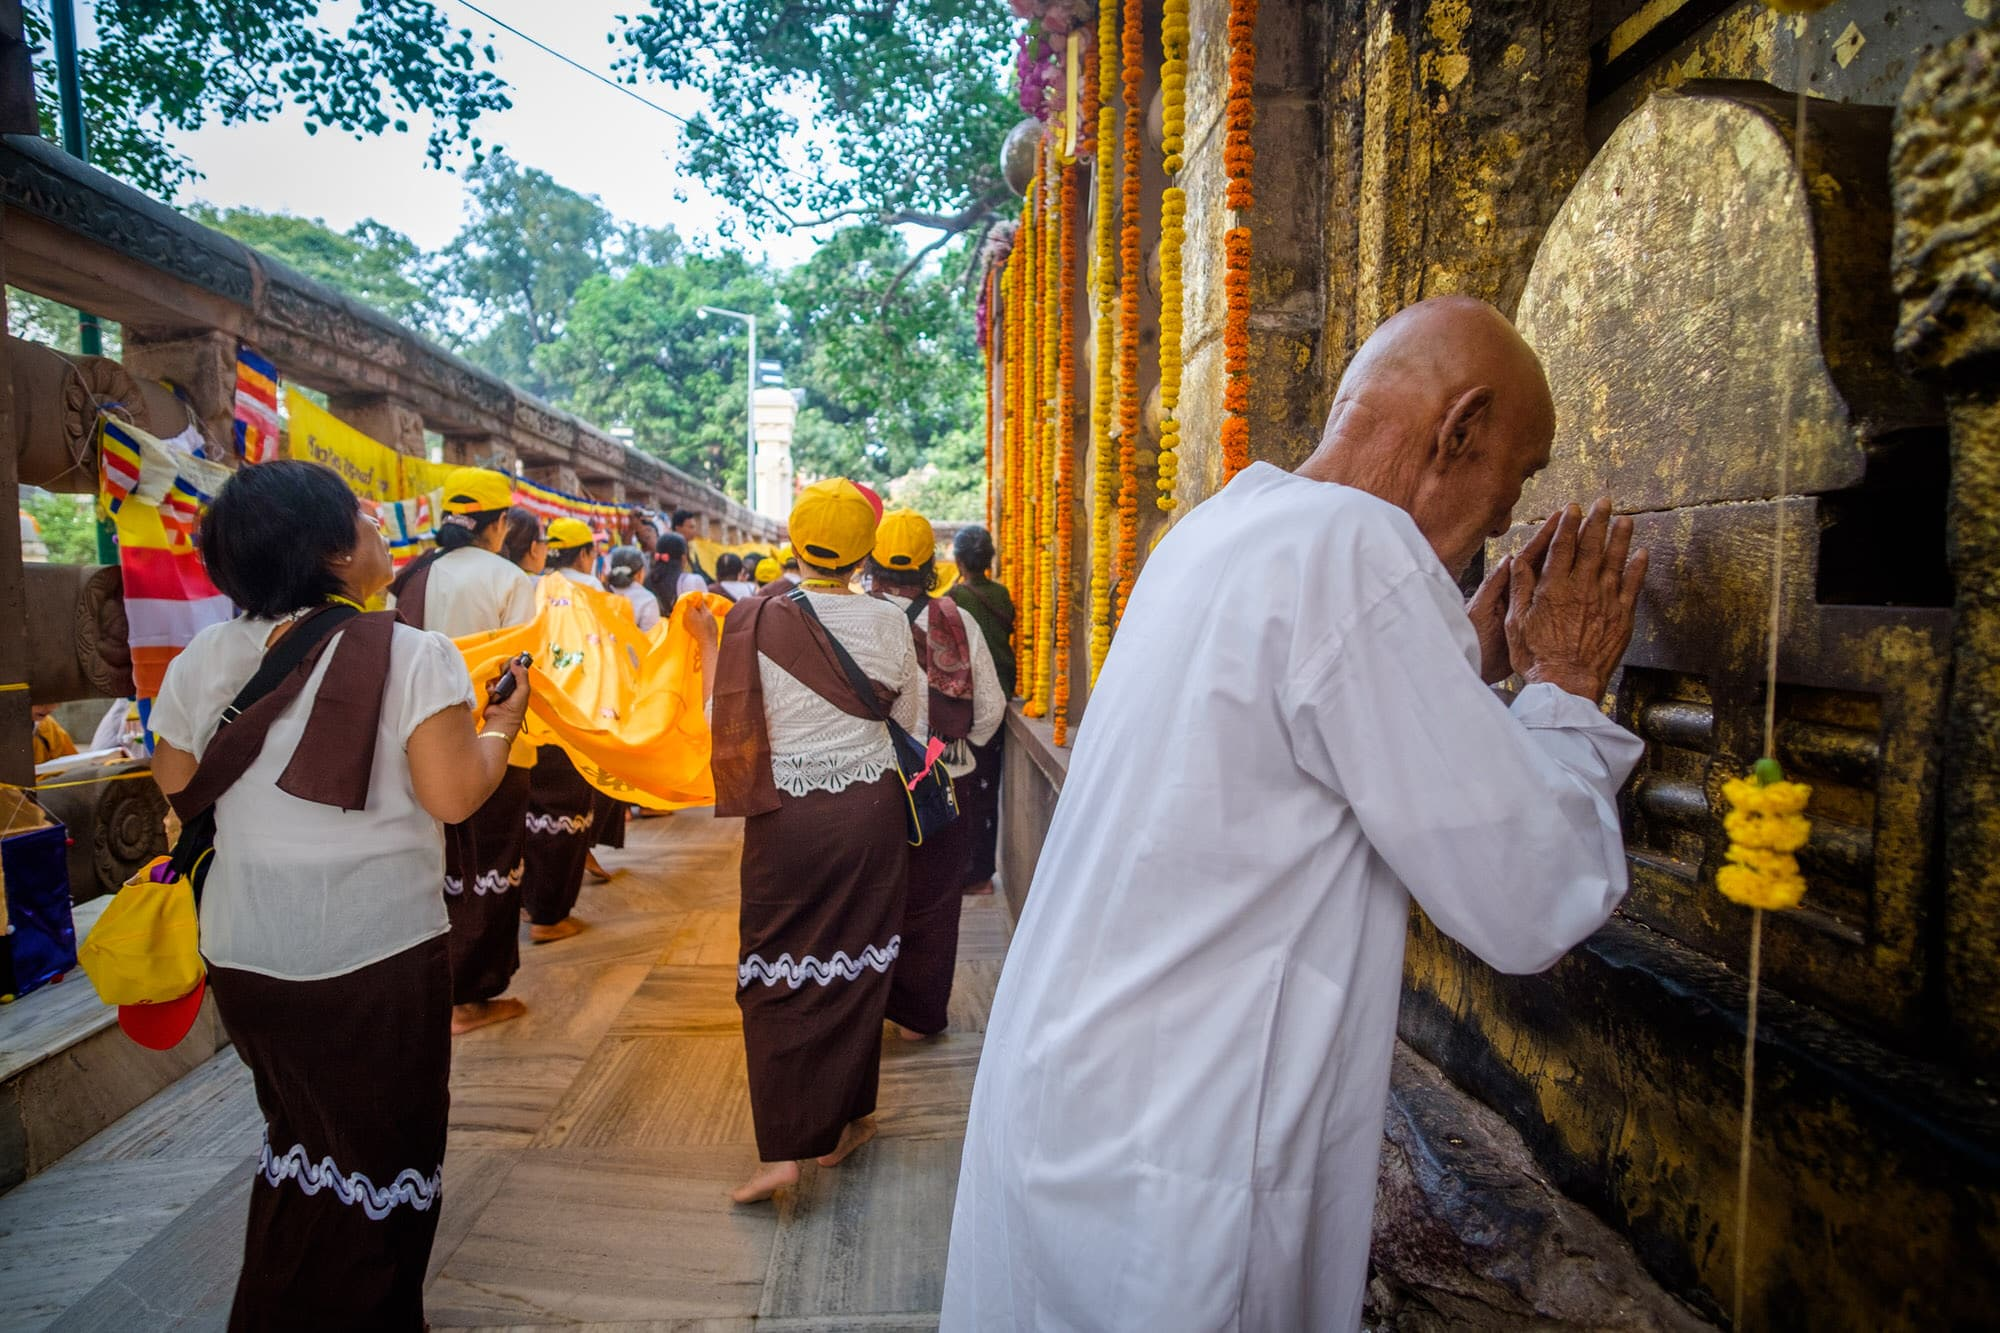 A pilgrim prays before the Bodhi tree in the Mahabodhi Temple, Bodhgaya